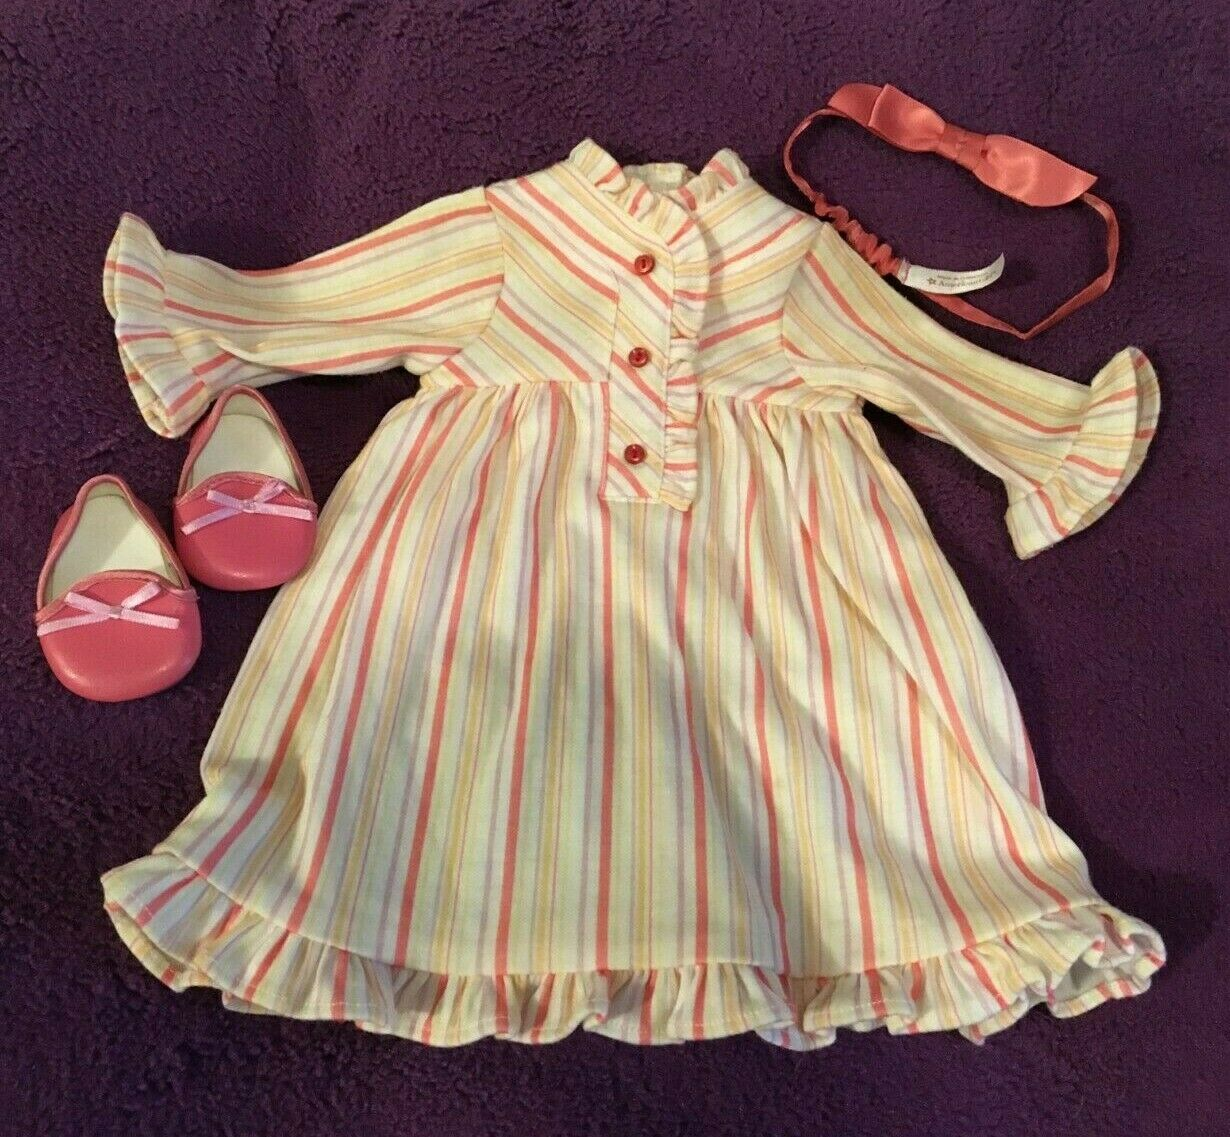 American Girl Doll Kit s Striped Nightie Nightgown Historical Slippers Hair Bow - $20.00